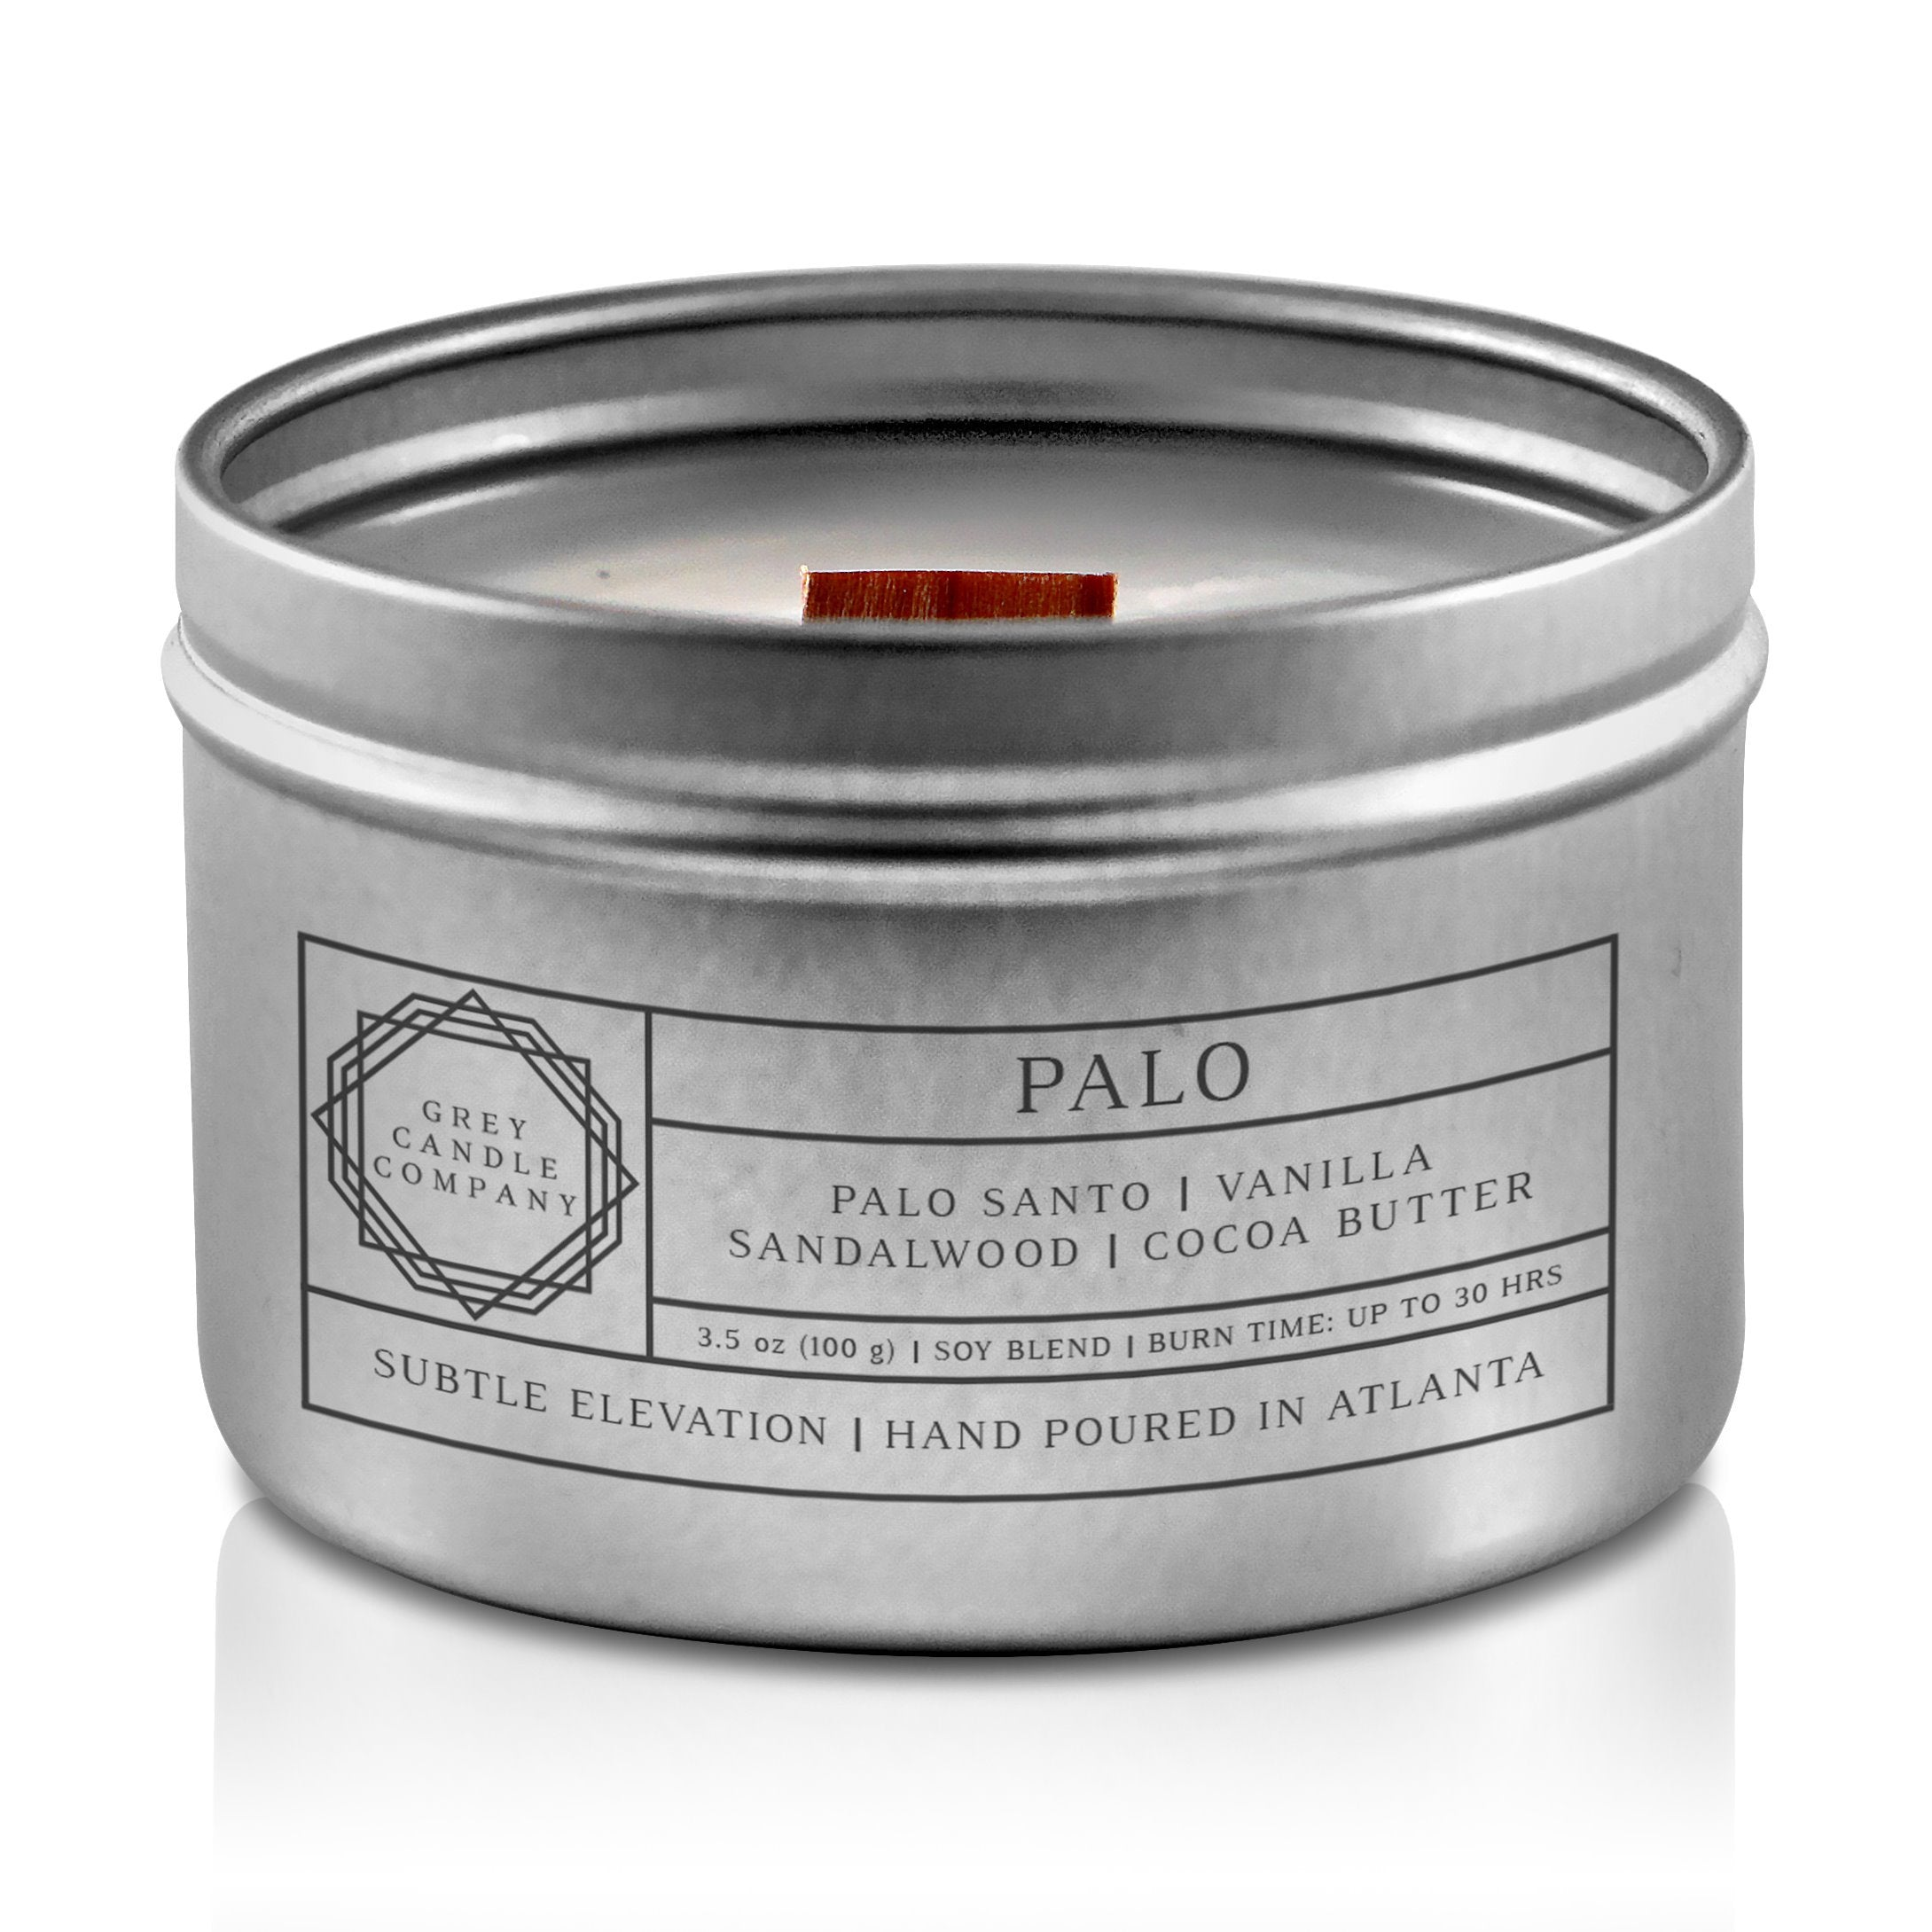 PALO CANDLES Grey Candle Company 3.5 oz. TIN